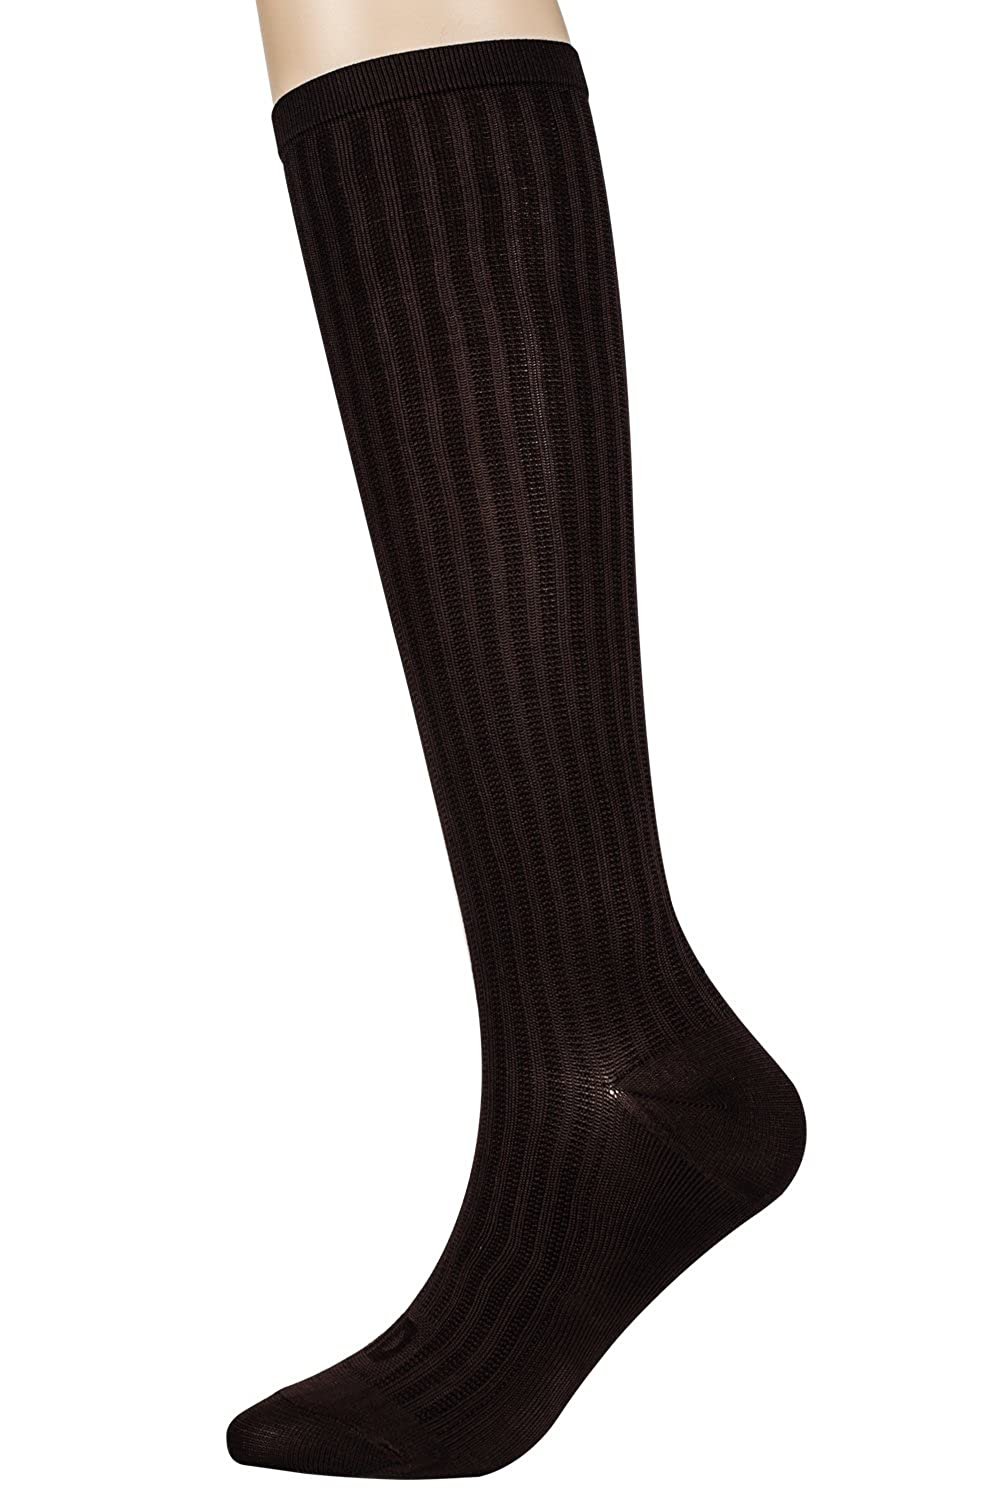 MD Brilliant Running Flight Compression Socks 8-15mmHg